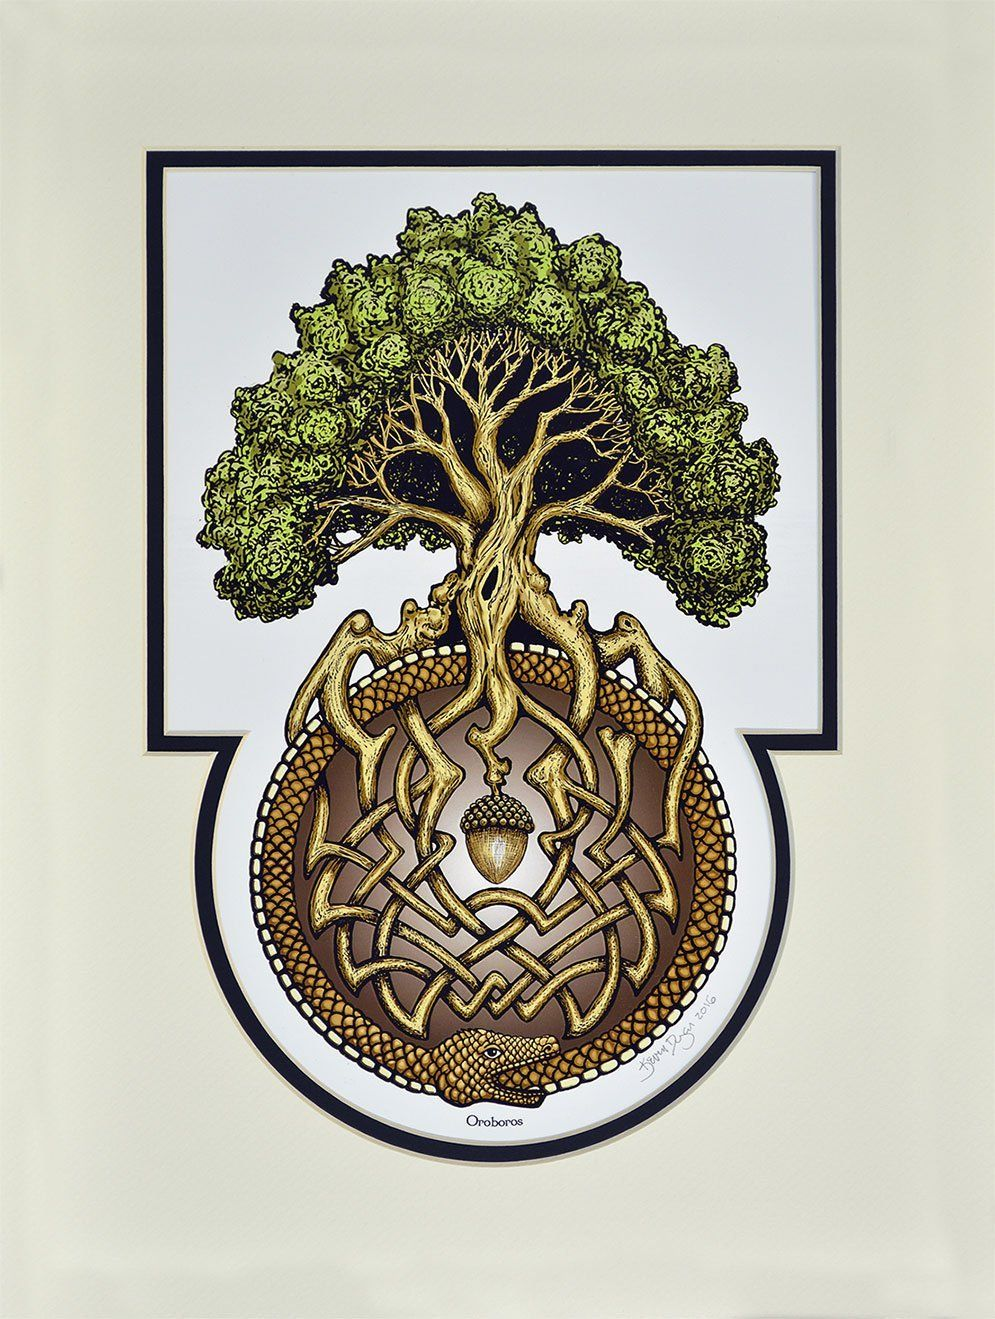 Ouroboros tree digital art print arbor great oak acorn the serpent or dragon eating its own tail is an ancient symbol seen in many cultures it represents both devouring and recreating of oneself buycottarizona Image collections